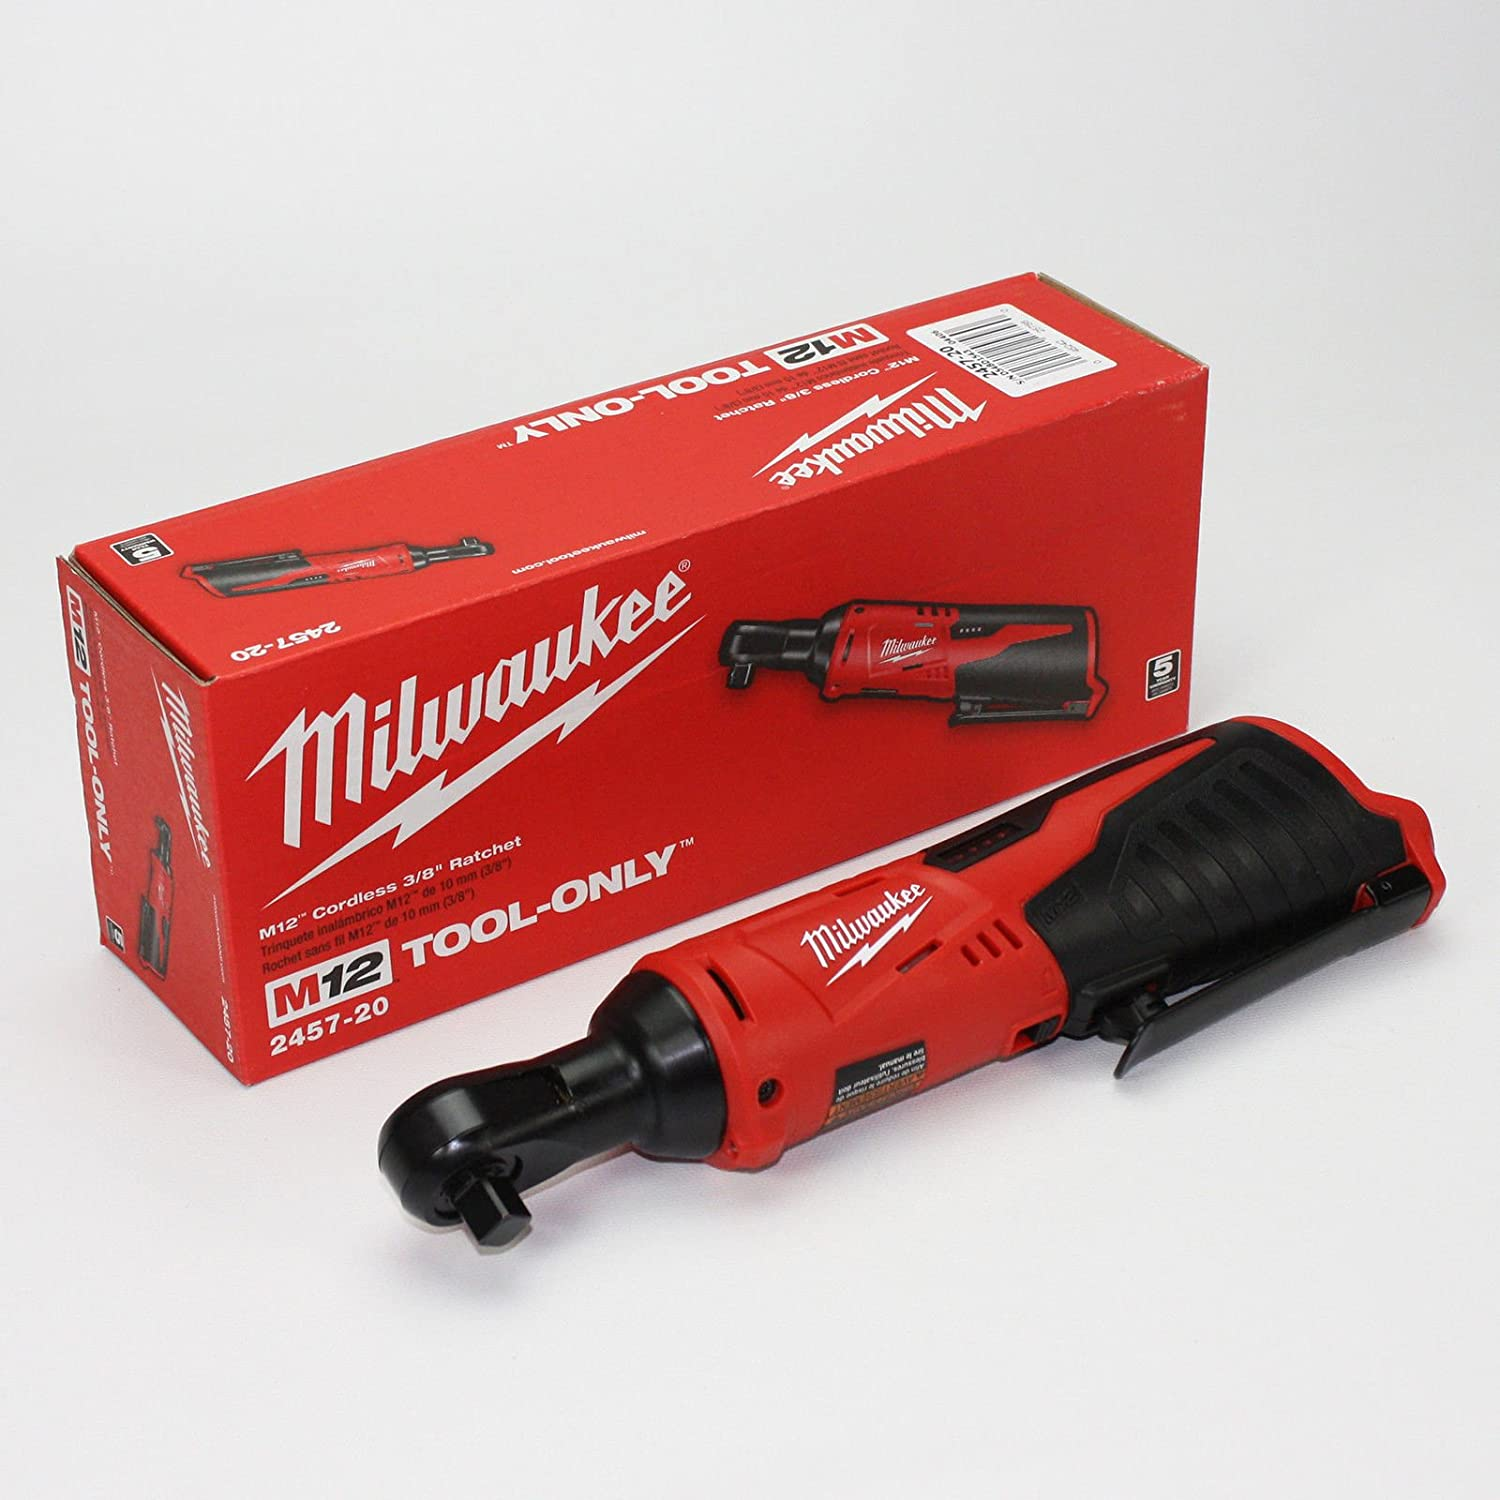 2457-20 Milwaukee M12 Cordless 3 8 Lithium-Ion Ratchet H4345 344Y584H351707